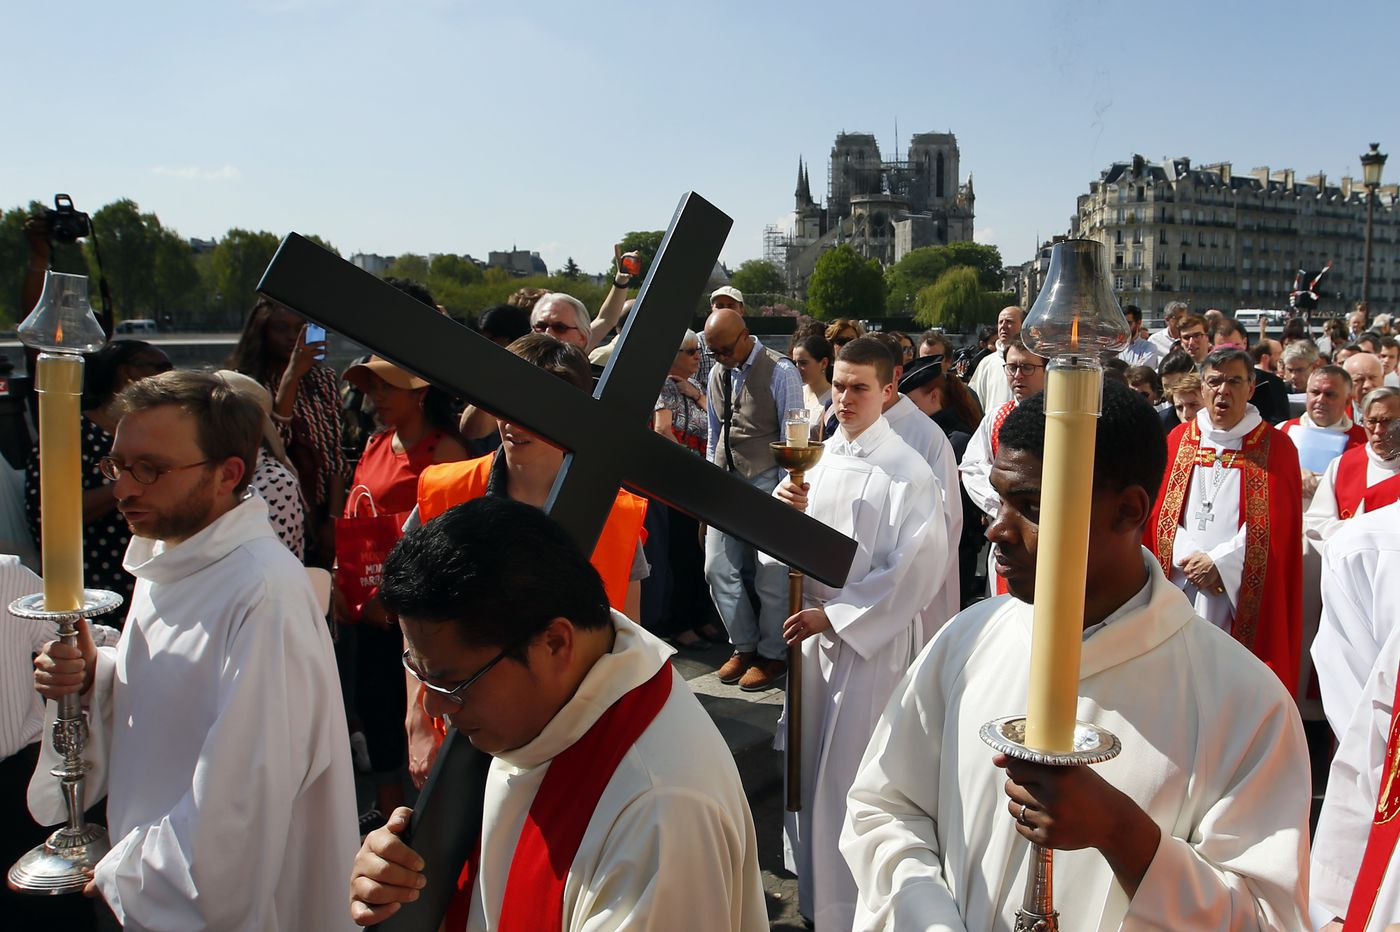 Holy Week continues, and Paris life resumes, without Notre Dame